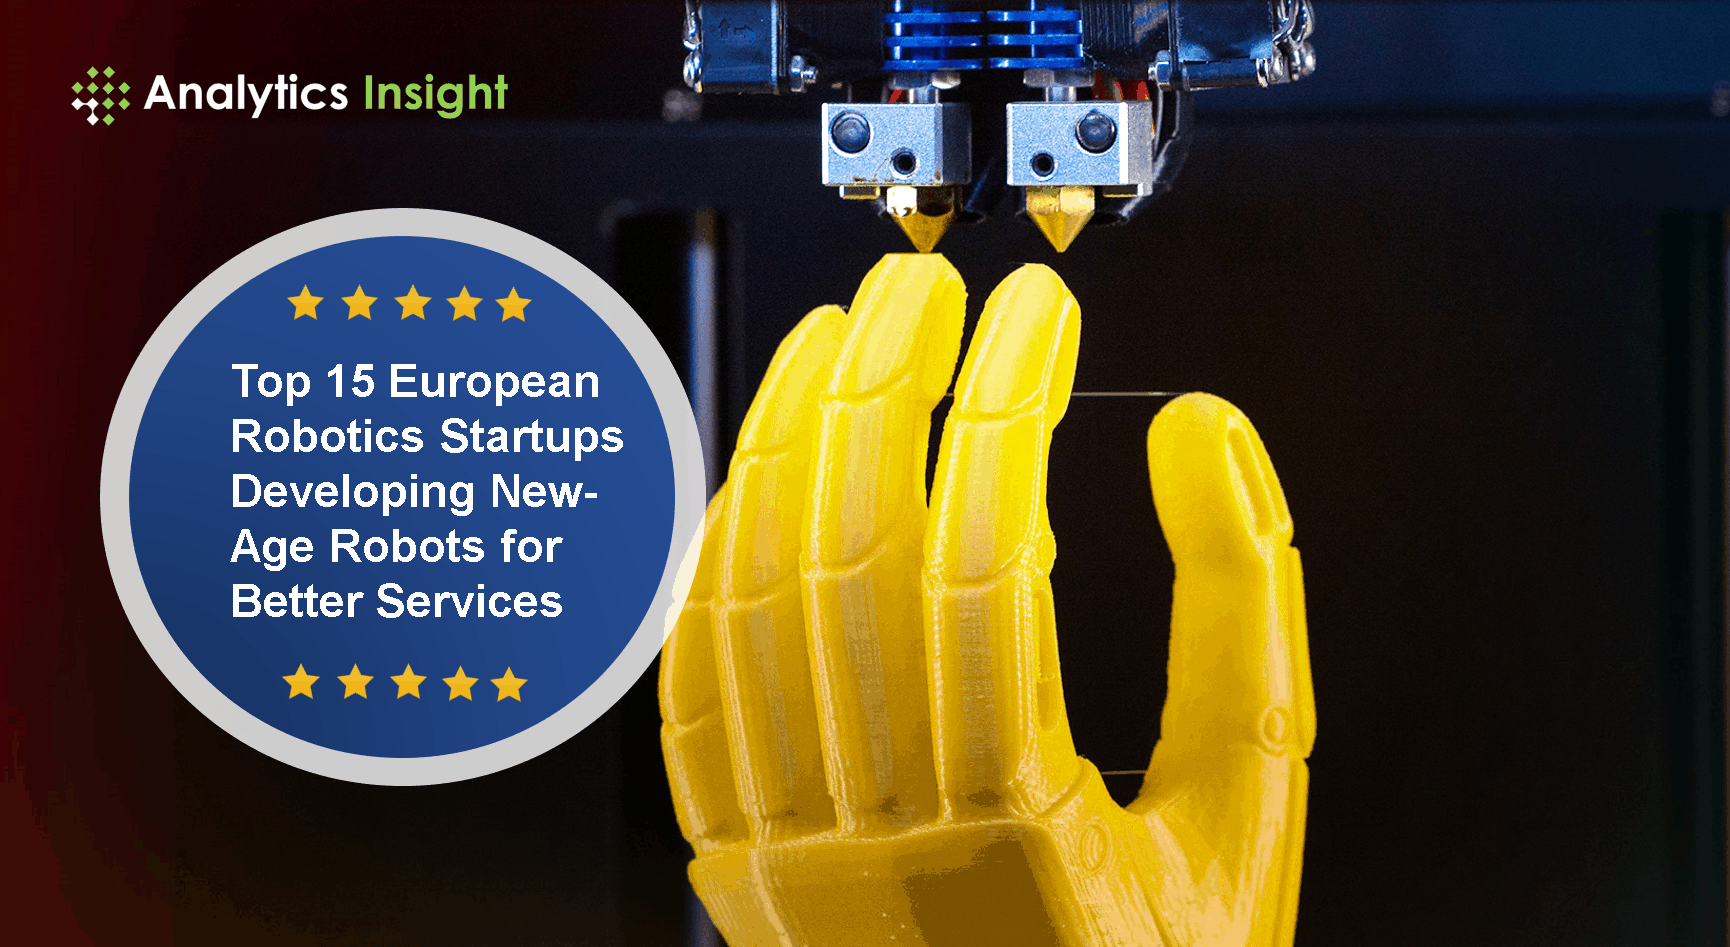 Top 15 European Robotics Startups